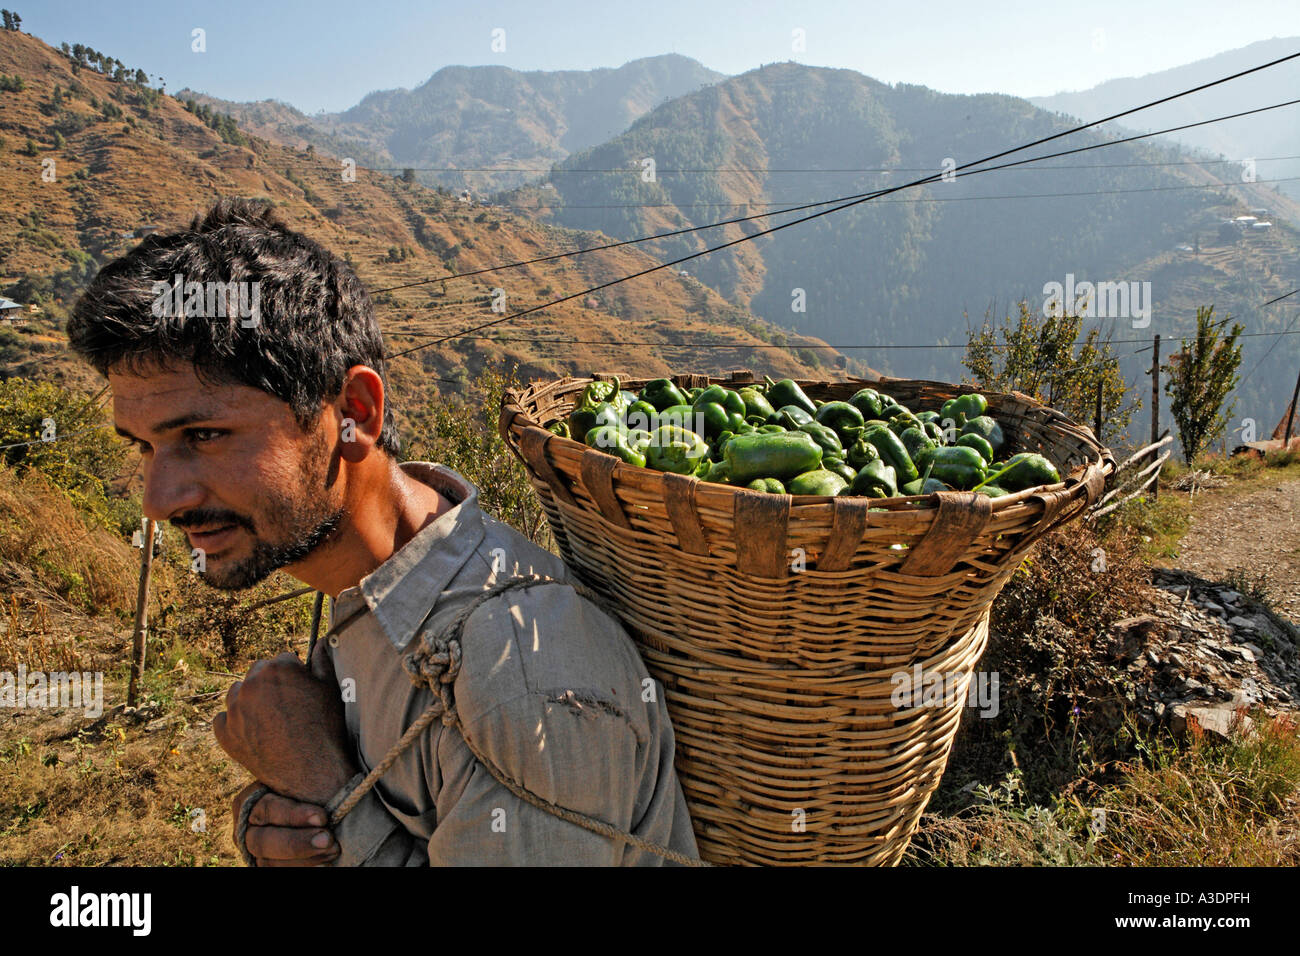 Man carrying his harvested peppers home, Matiyama, Himachal Pradesh, India - Stock Image